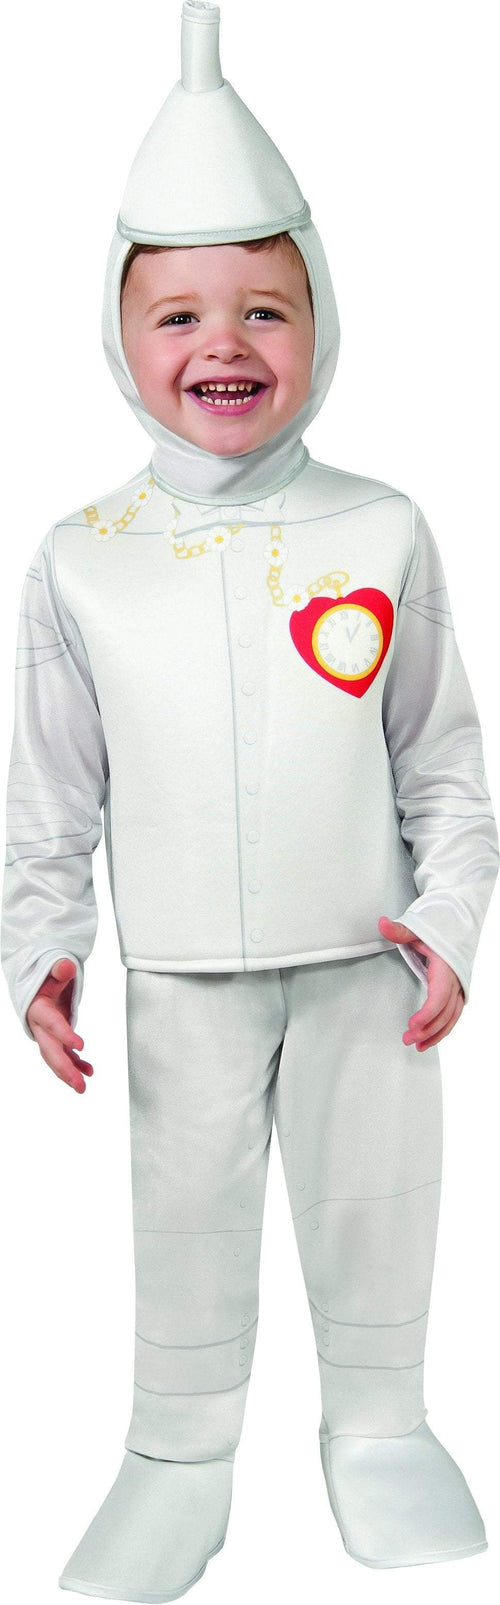 Rubies Costumes Toddler Boys Tin Man Costume - Wizard of Oz